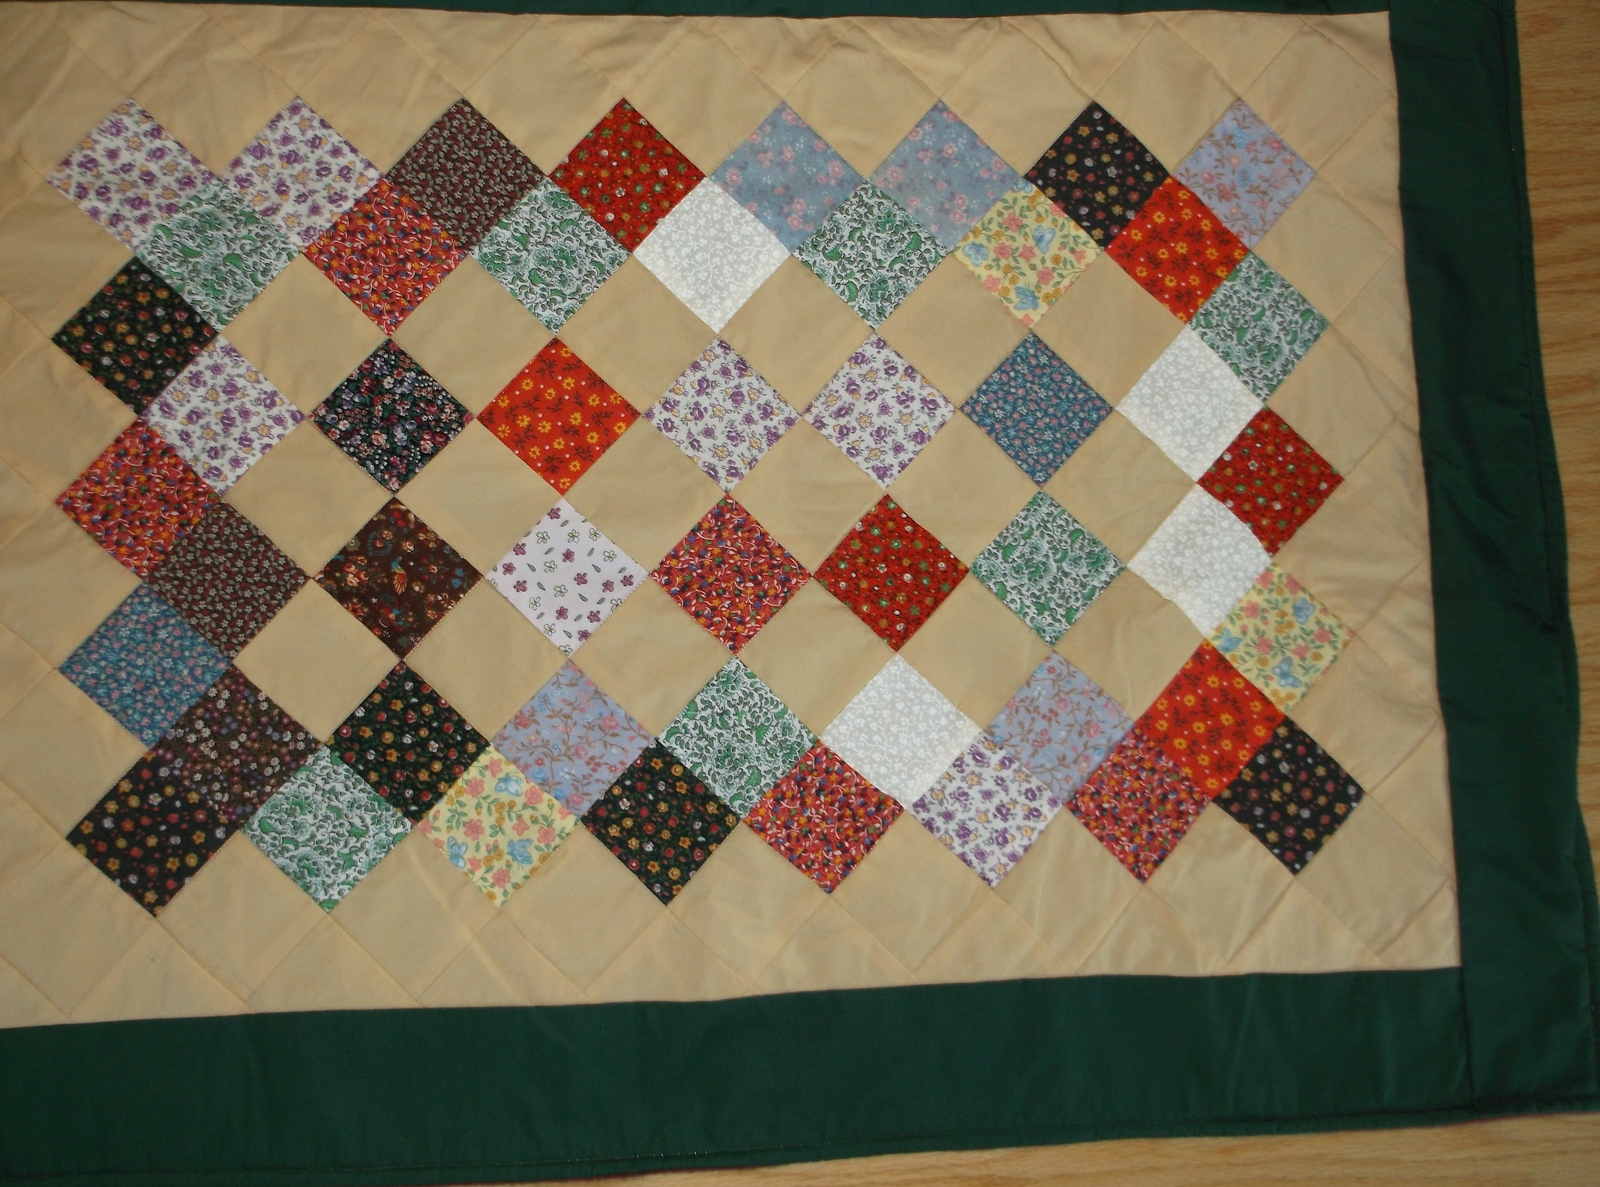 FLORAL QUILT small 26 x 33 infant lap wheelchair patchwork handcrafted